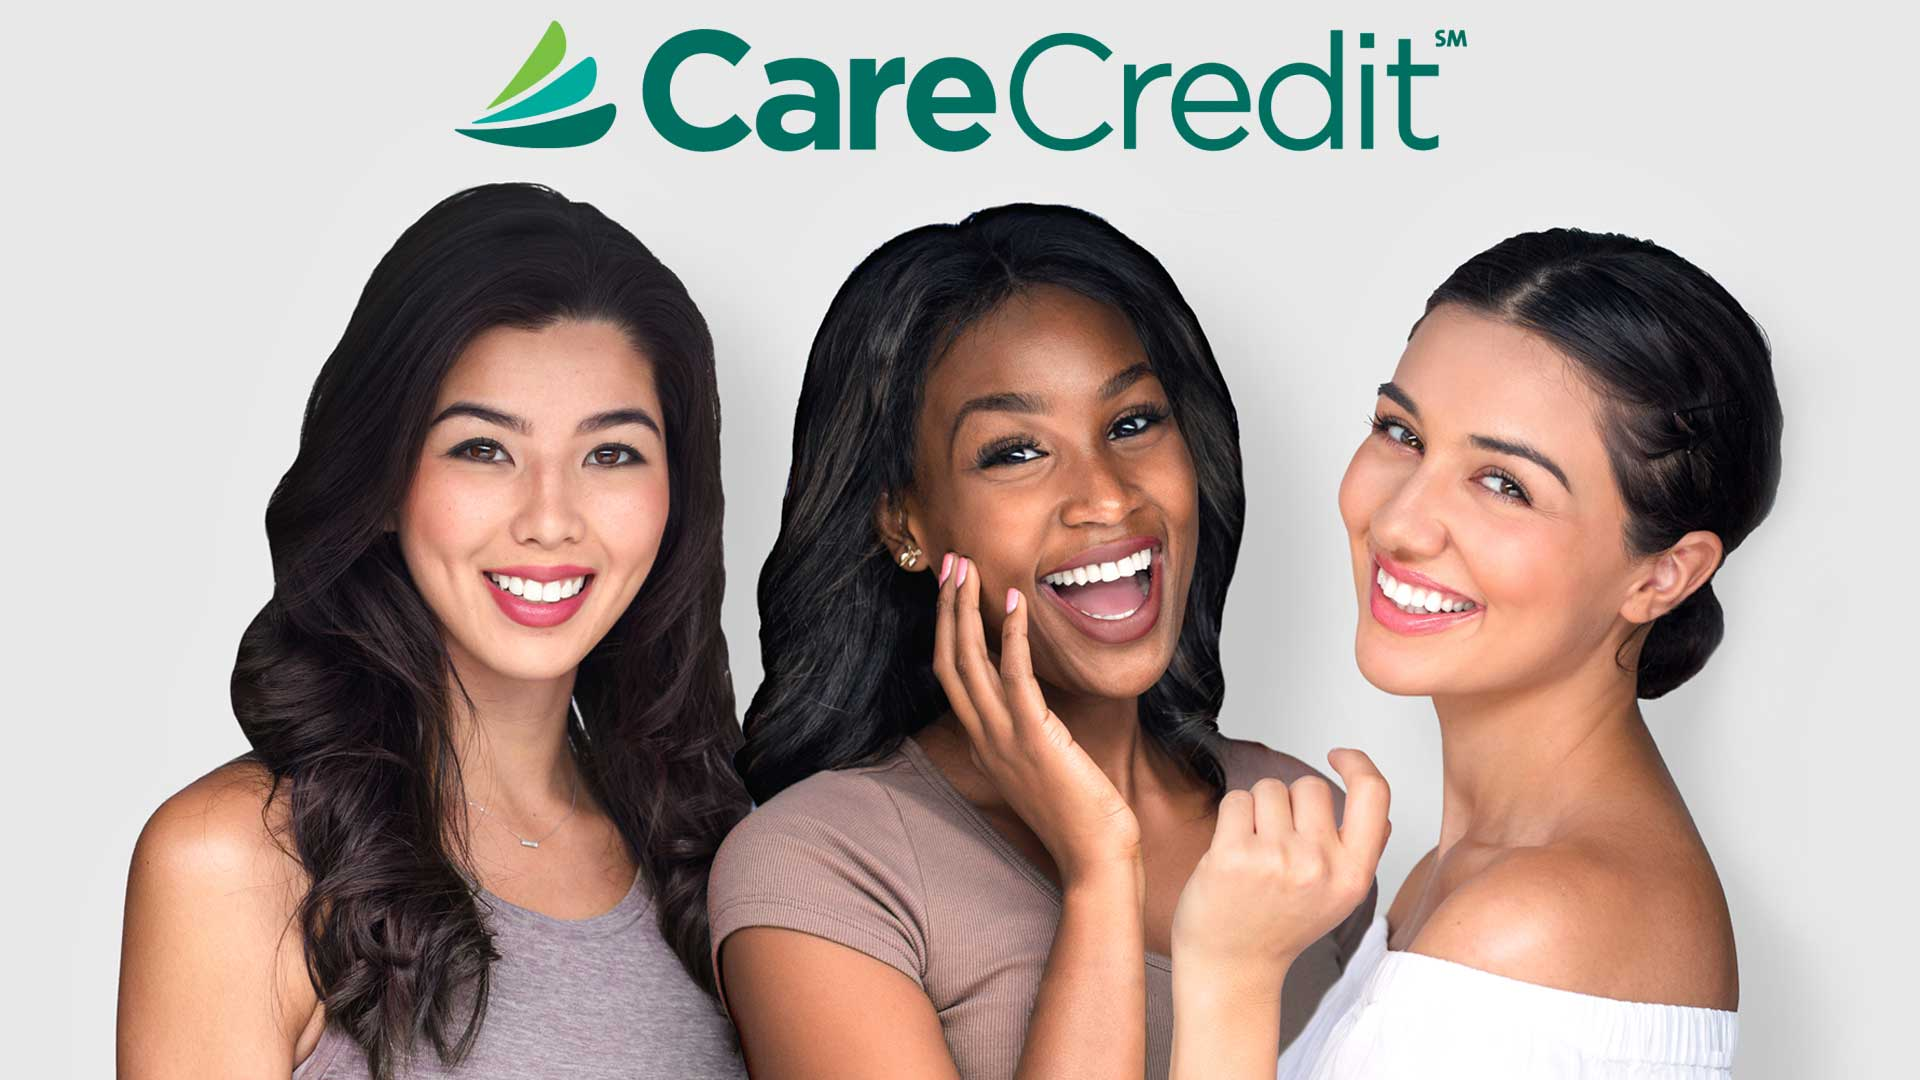 Cover it with CareCredit®